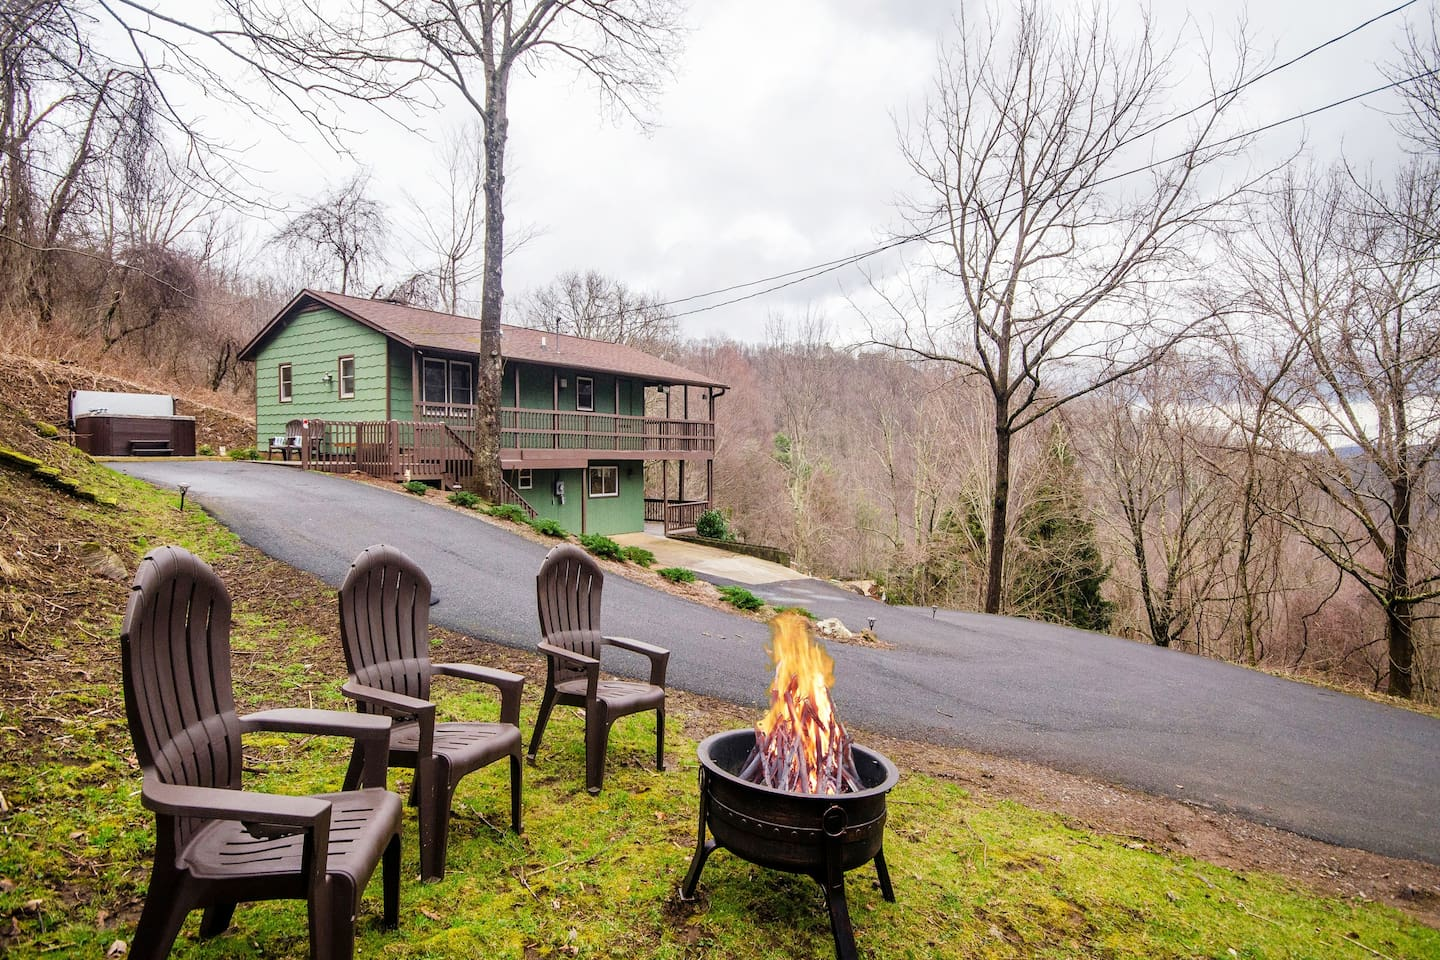 Enjoy the views while relaxing at the firepit